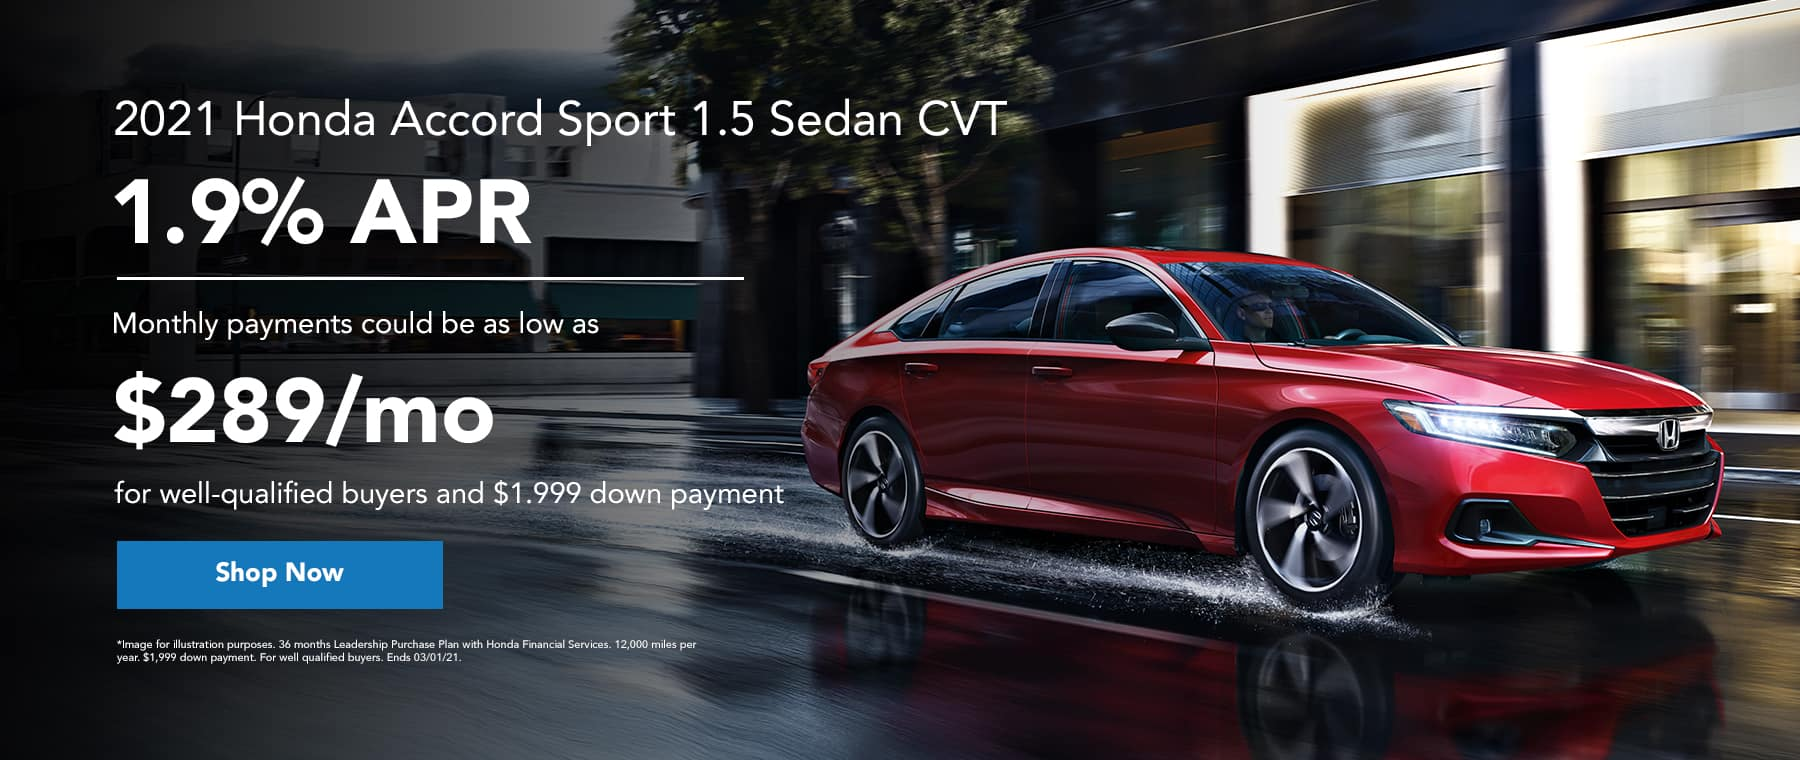 2021 Honda Accord Sport 1.5 Sedan CVT - 1.9% apr - monthly payments could be as low as $289/mo